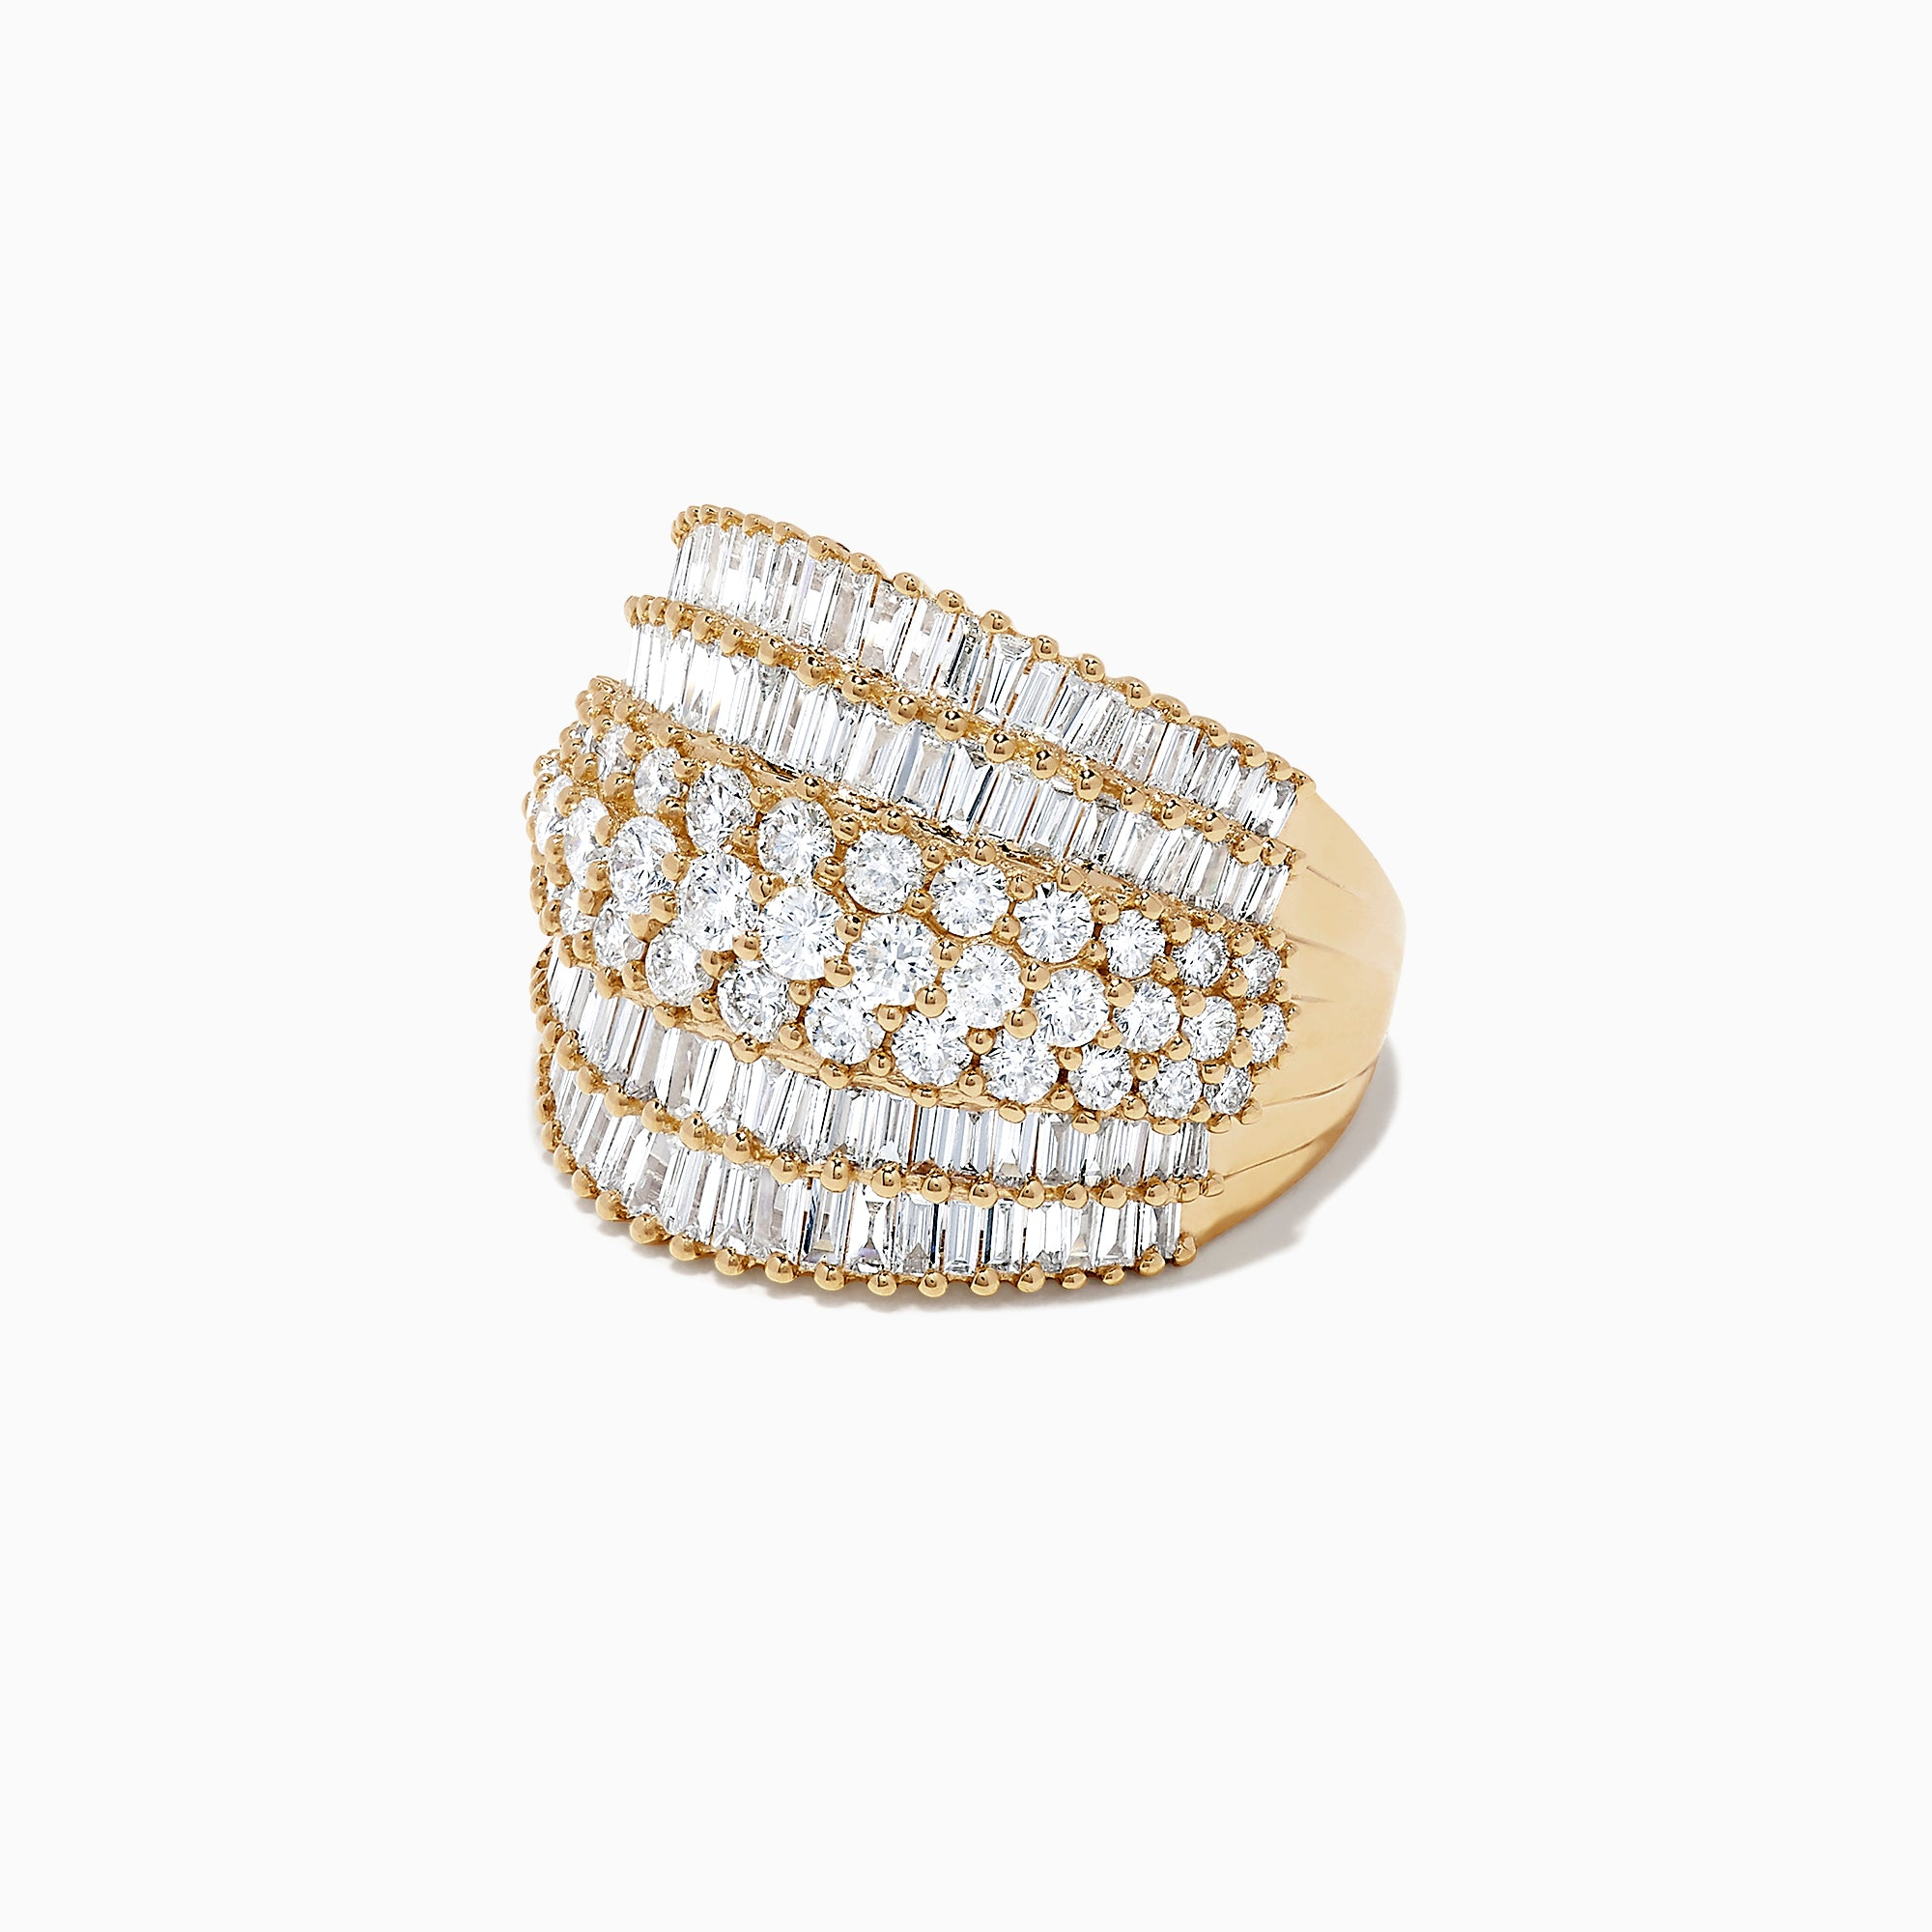 Effy D'Oro 14K Yellow Gold Diamond Ring, 2.85 TCW